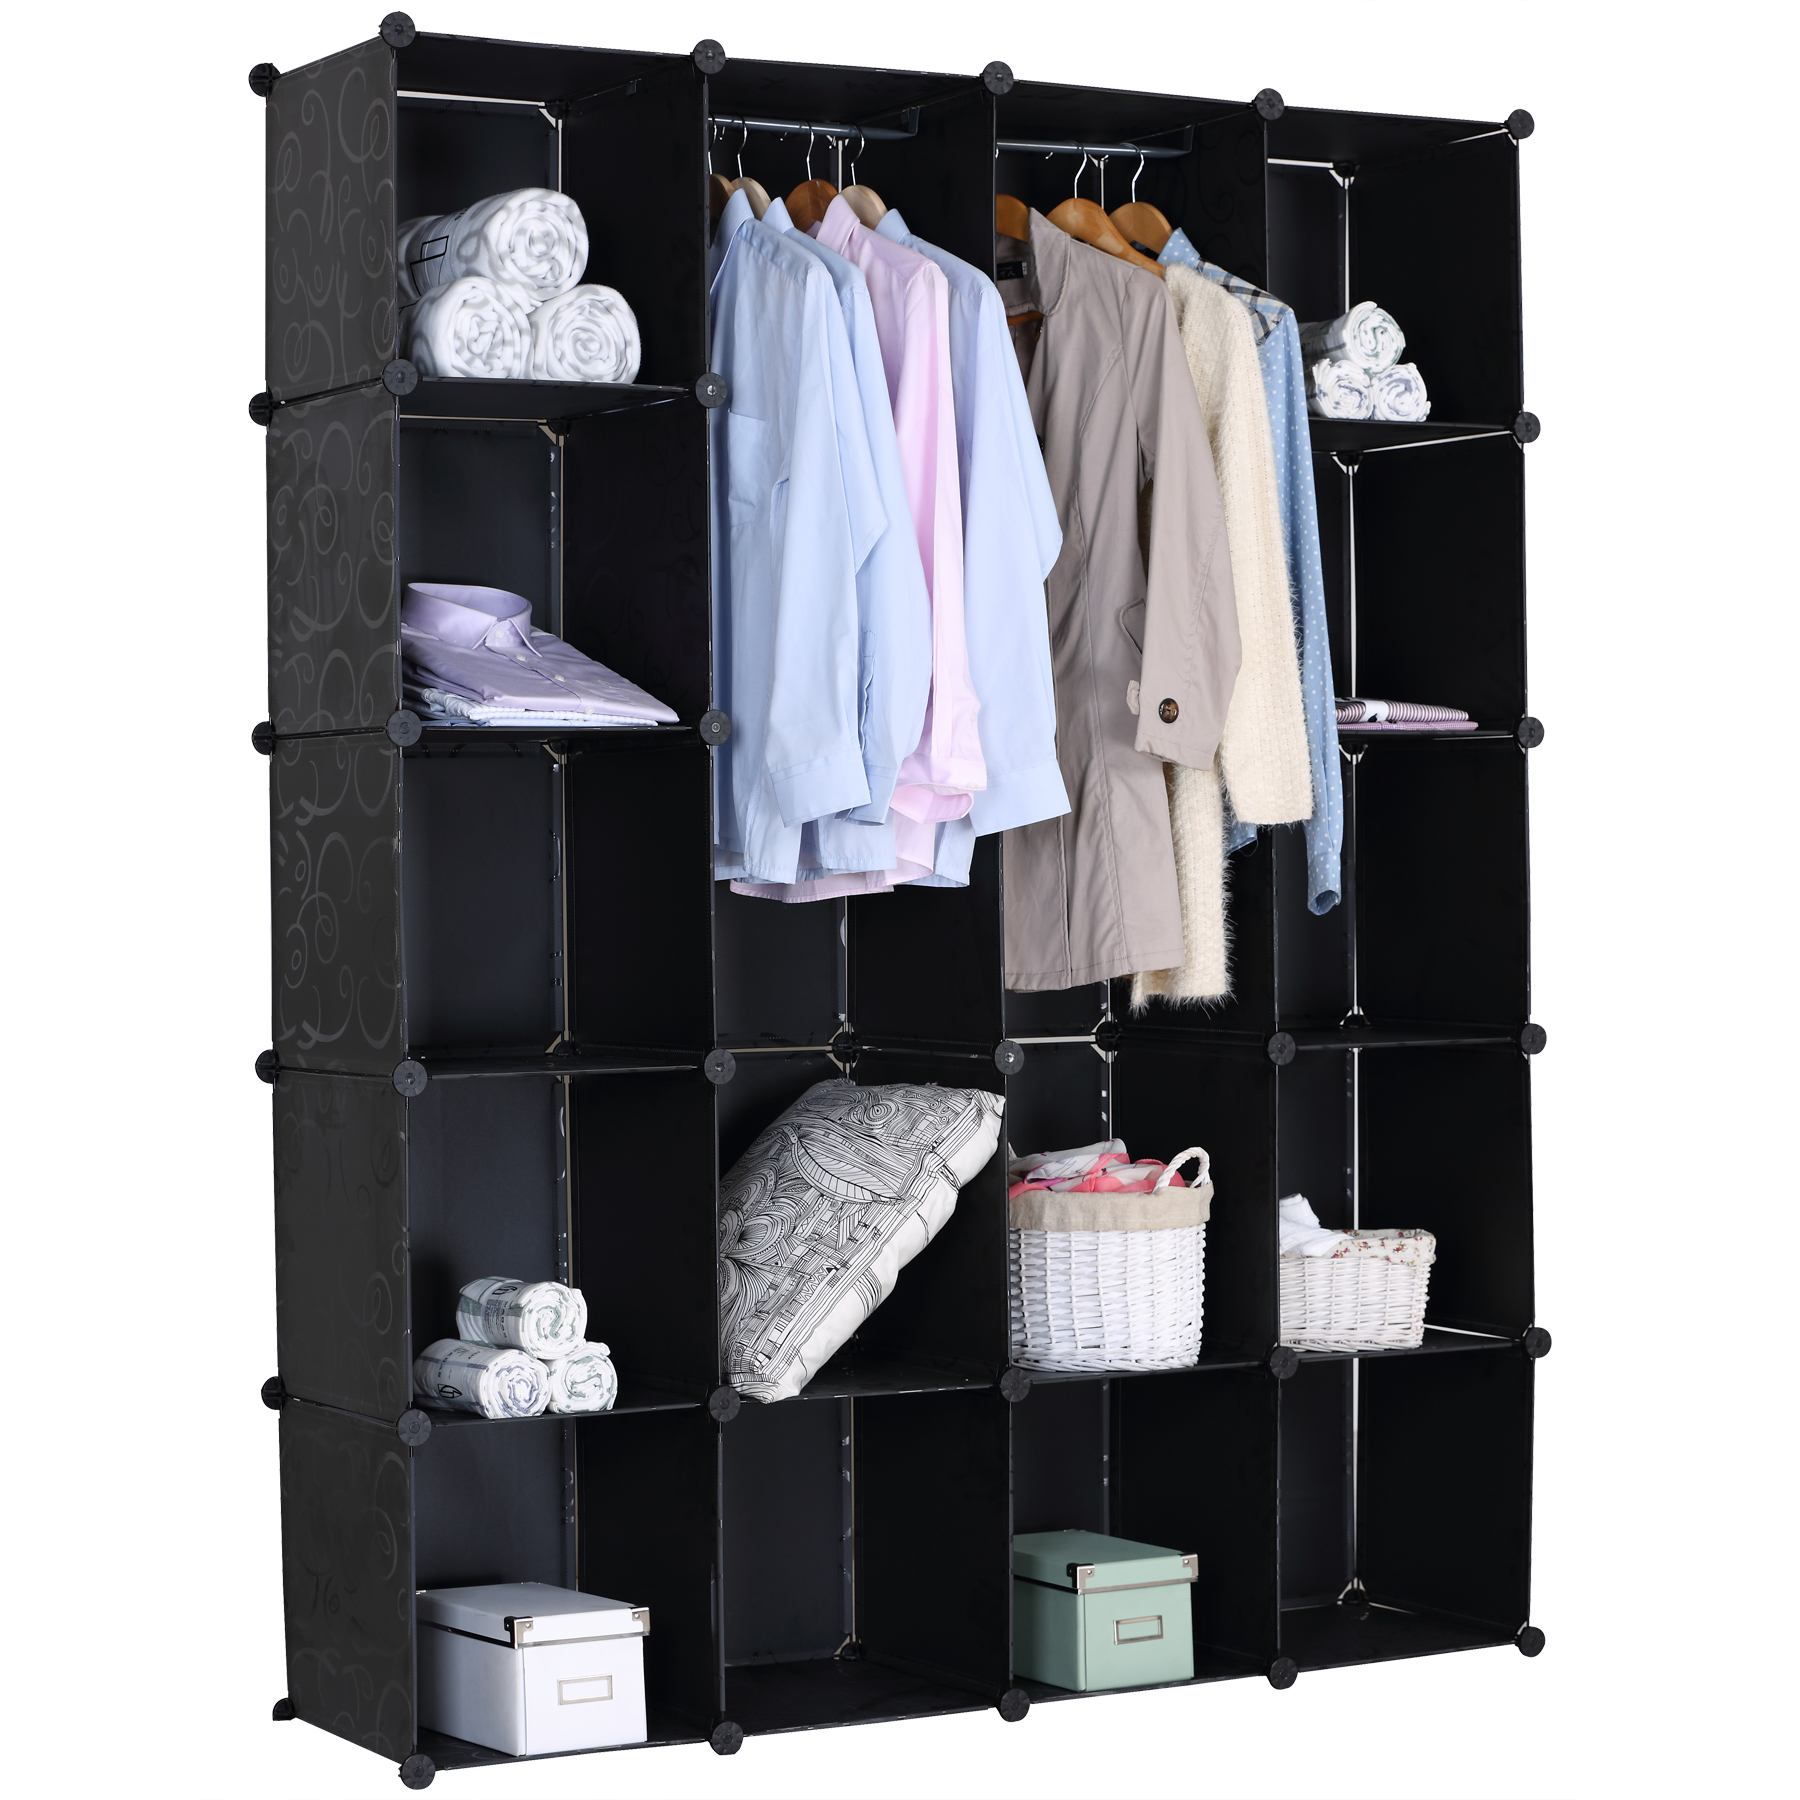 kleiderschrank kunststoff schuhschrank steckregal badregal regalsystem diy 171 ebay. Black Bedroom Furniture Sets. Home Design Ideas